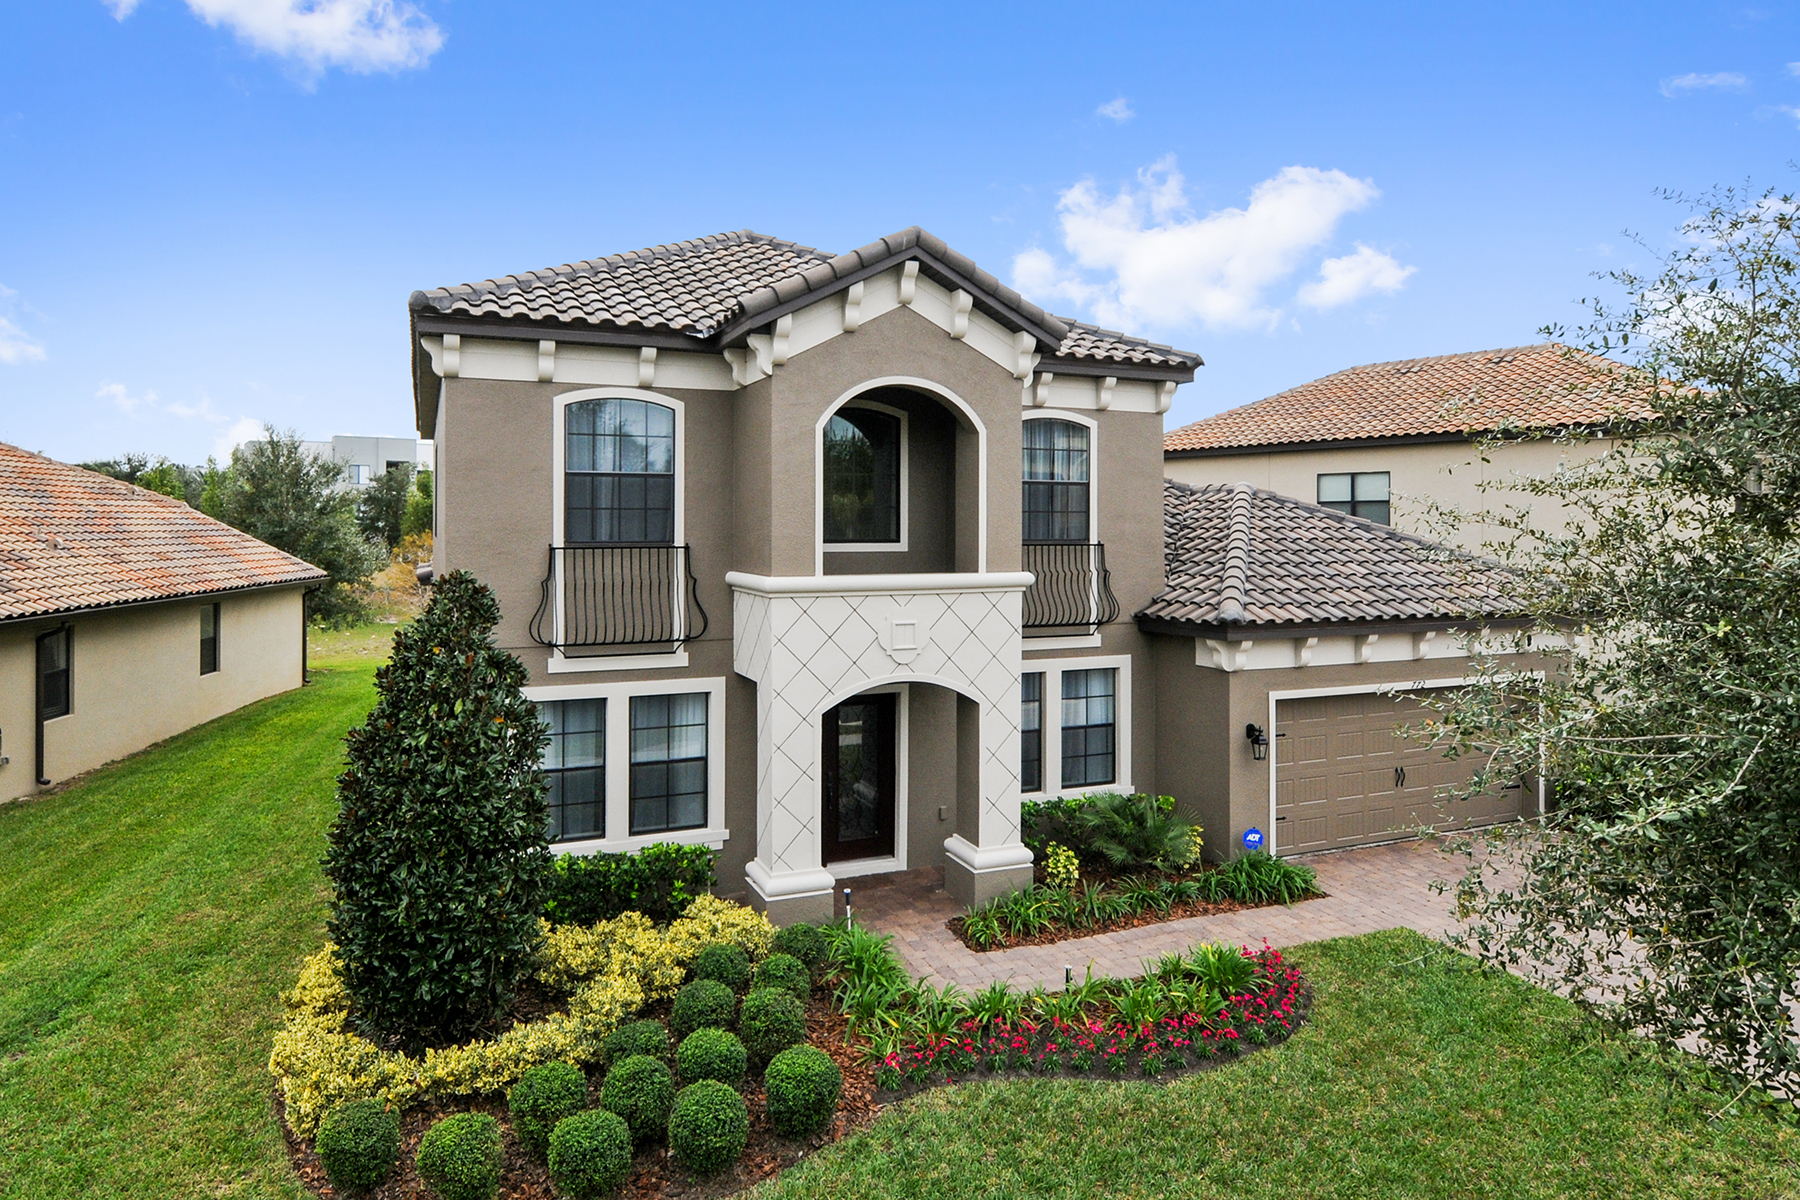 Single Family Home for Sale at ORLANDO - LAKE MARY 772 Stephens Pass Cv Lake Mary, Florida, 32746 United States